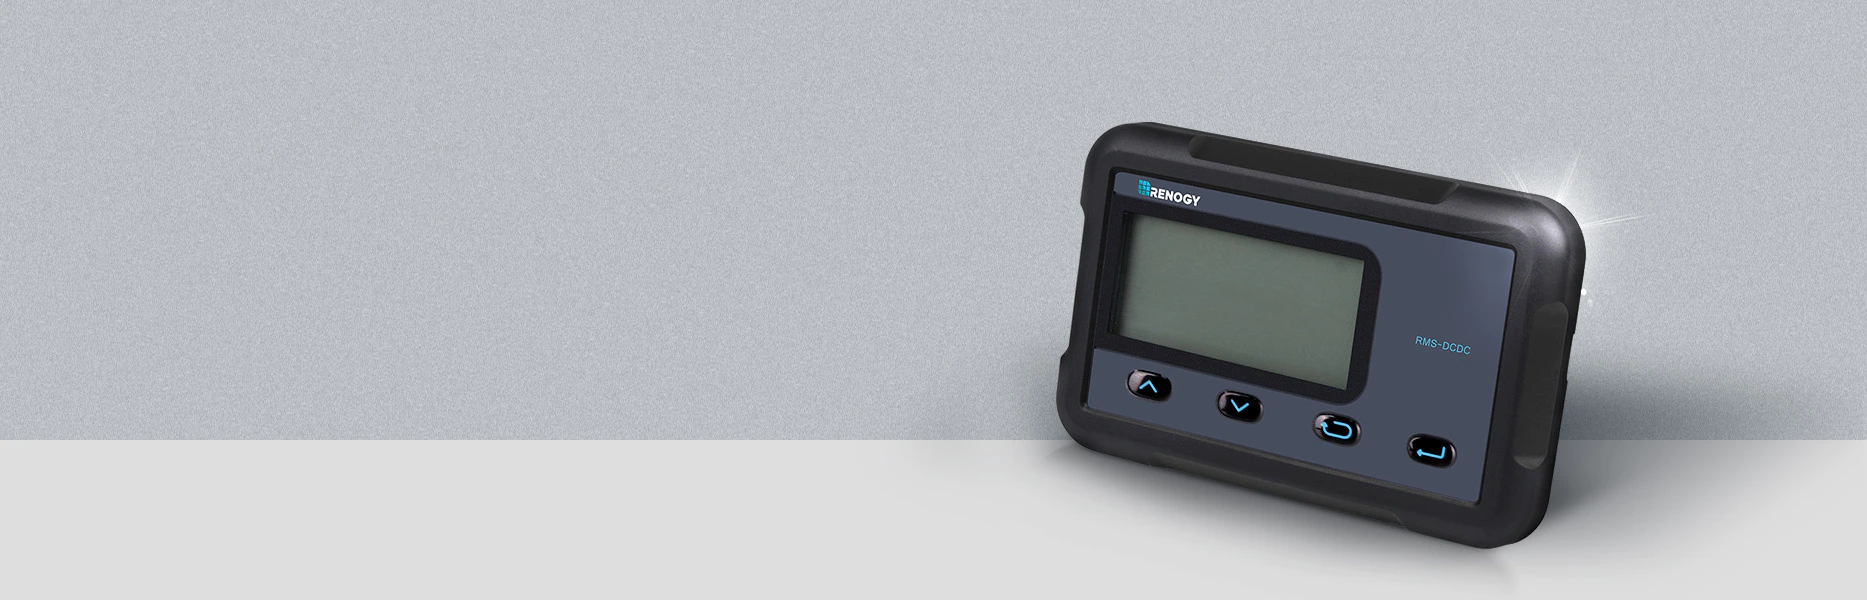 Monitoring Screen for DC-DC MPPT Battery Charger Series